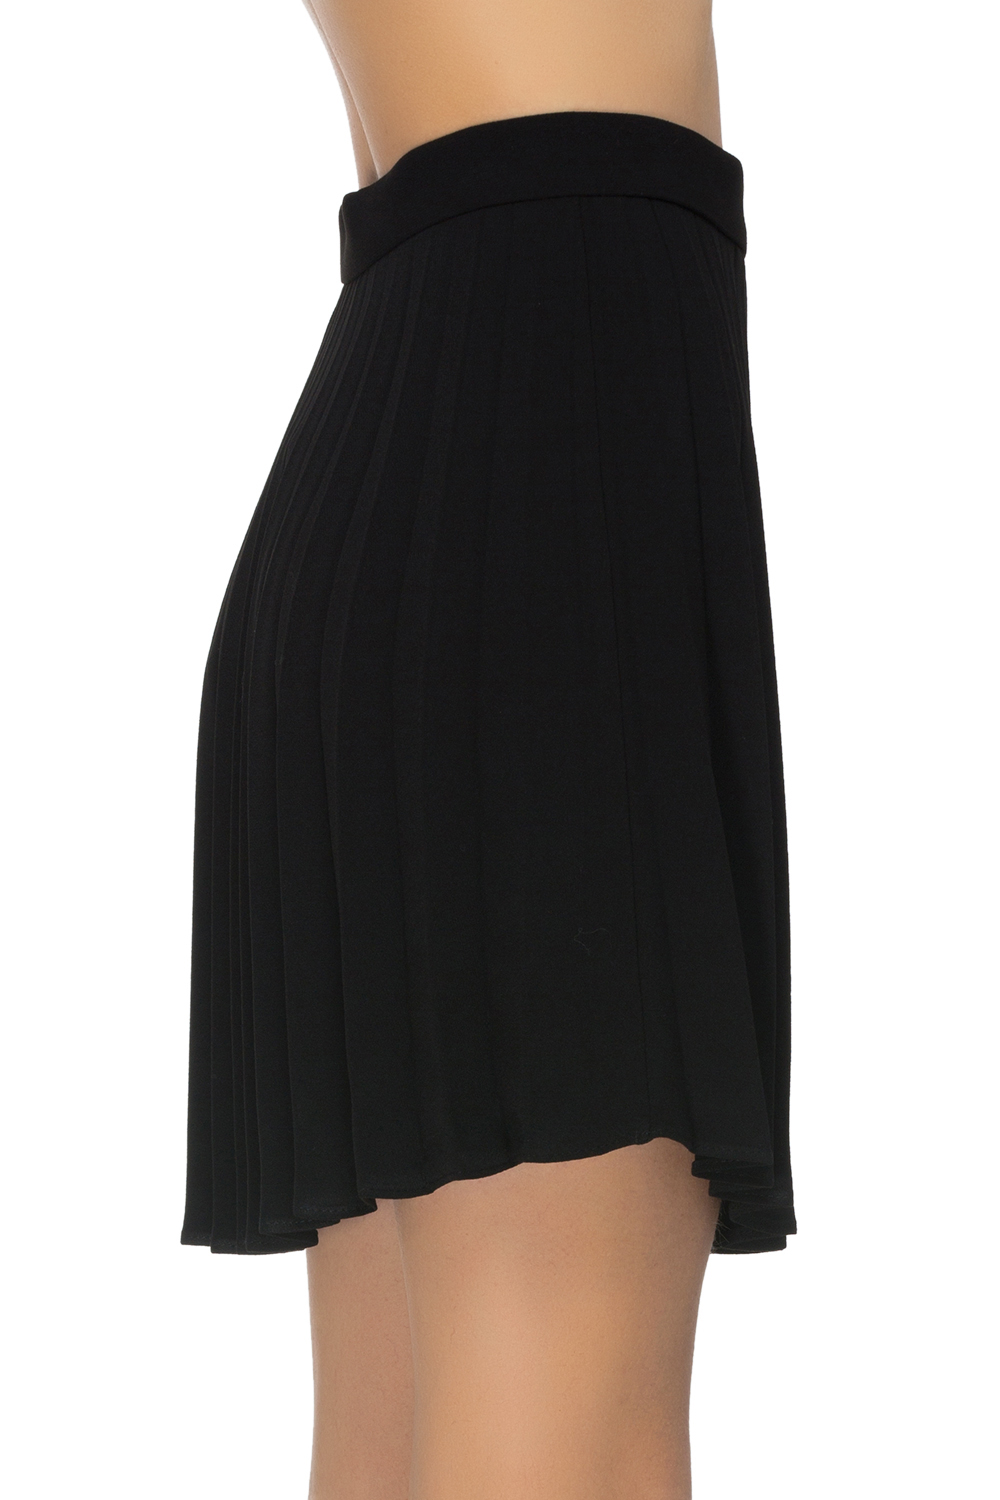 WOMEN HIGH-WAIST CREPE PLEATED SKIRT is rated out of 5 by Rated 2 out of 5 by Jabeen from Maintenance issue So, I bought this pleated skirt because I loved the pleated design/5(38).